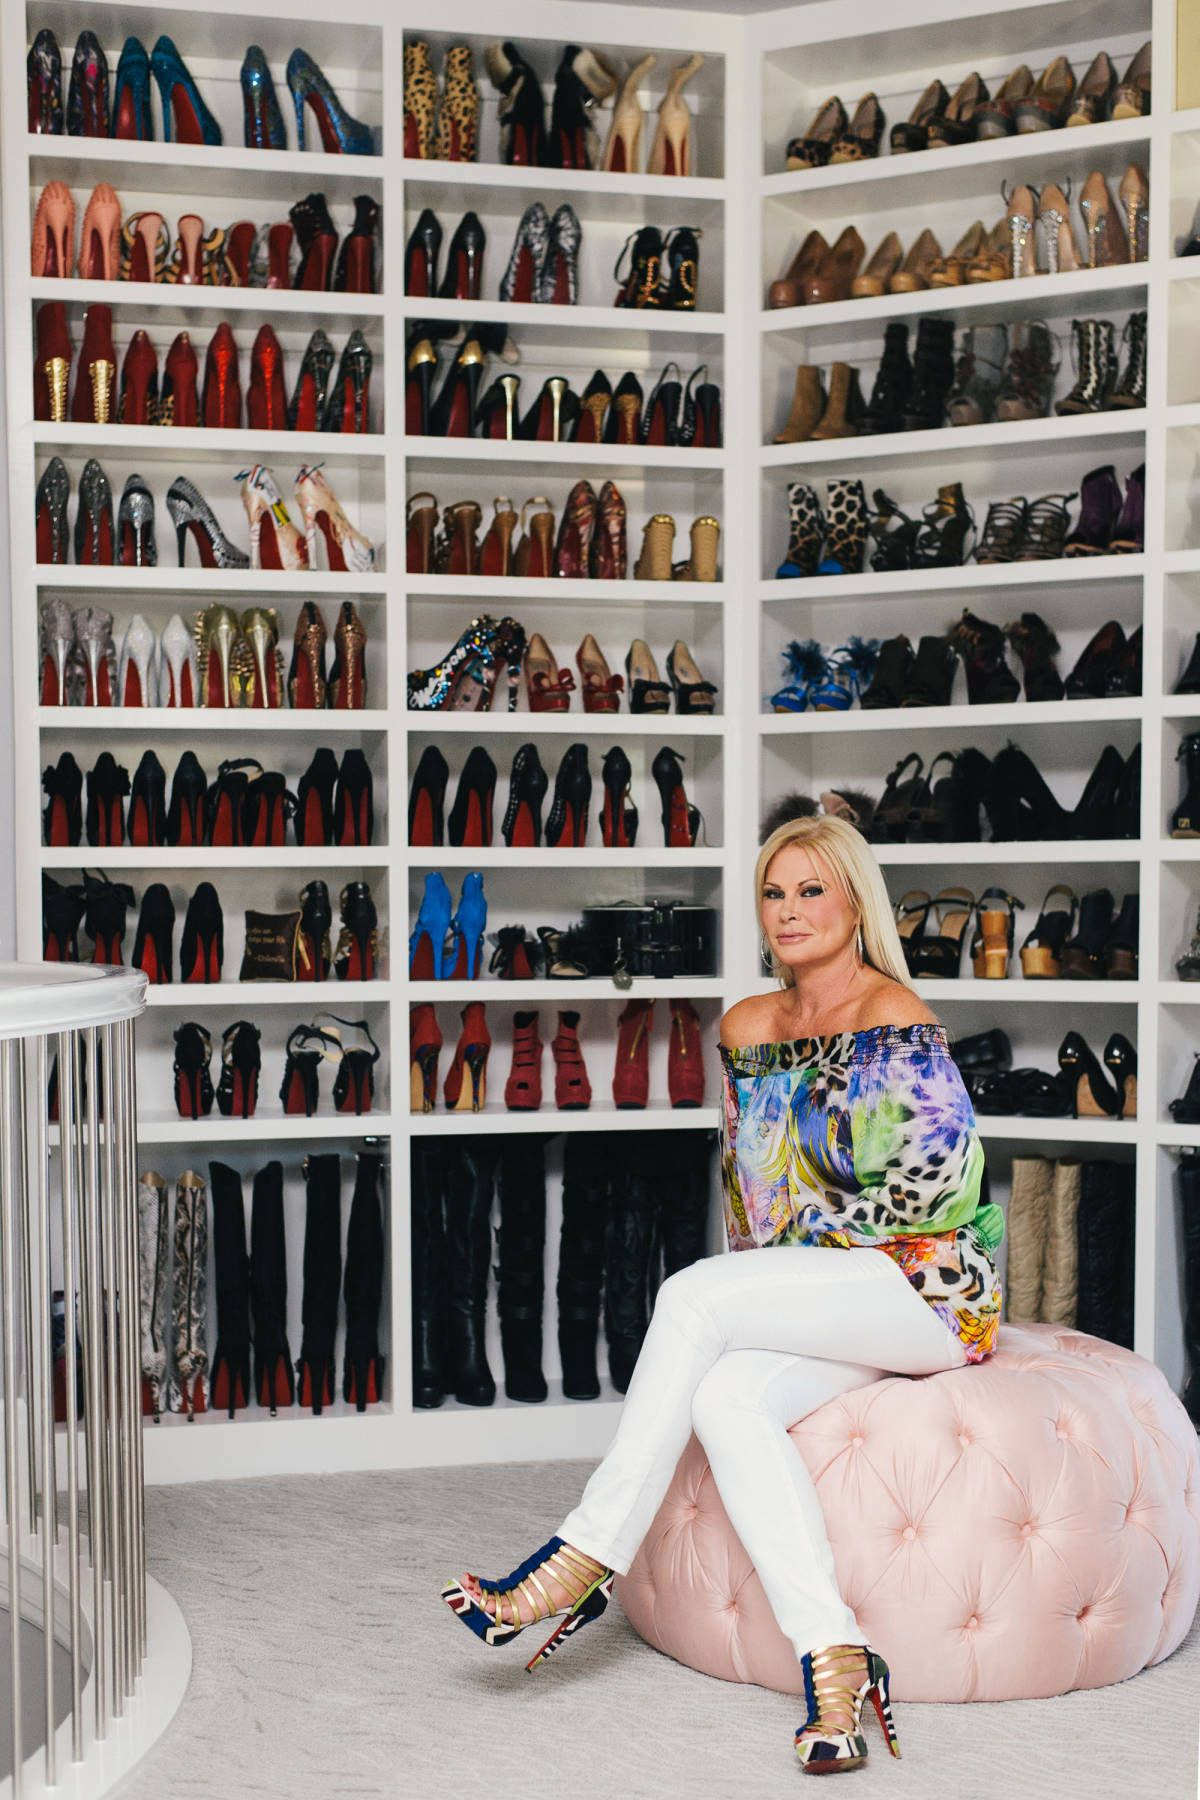 Meet The Woman With The Biggest Closet In America